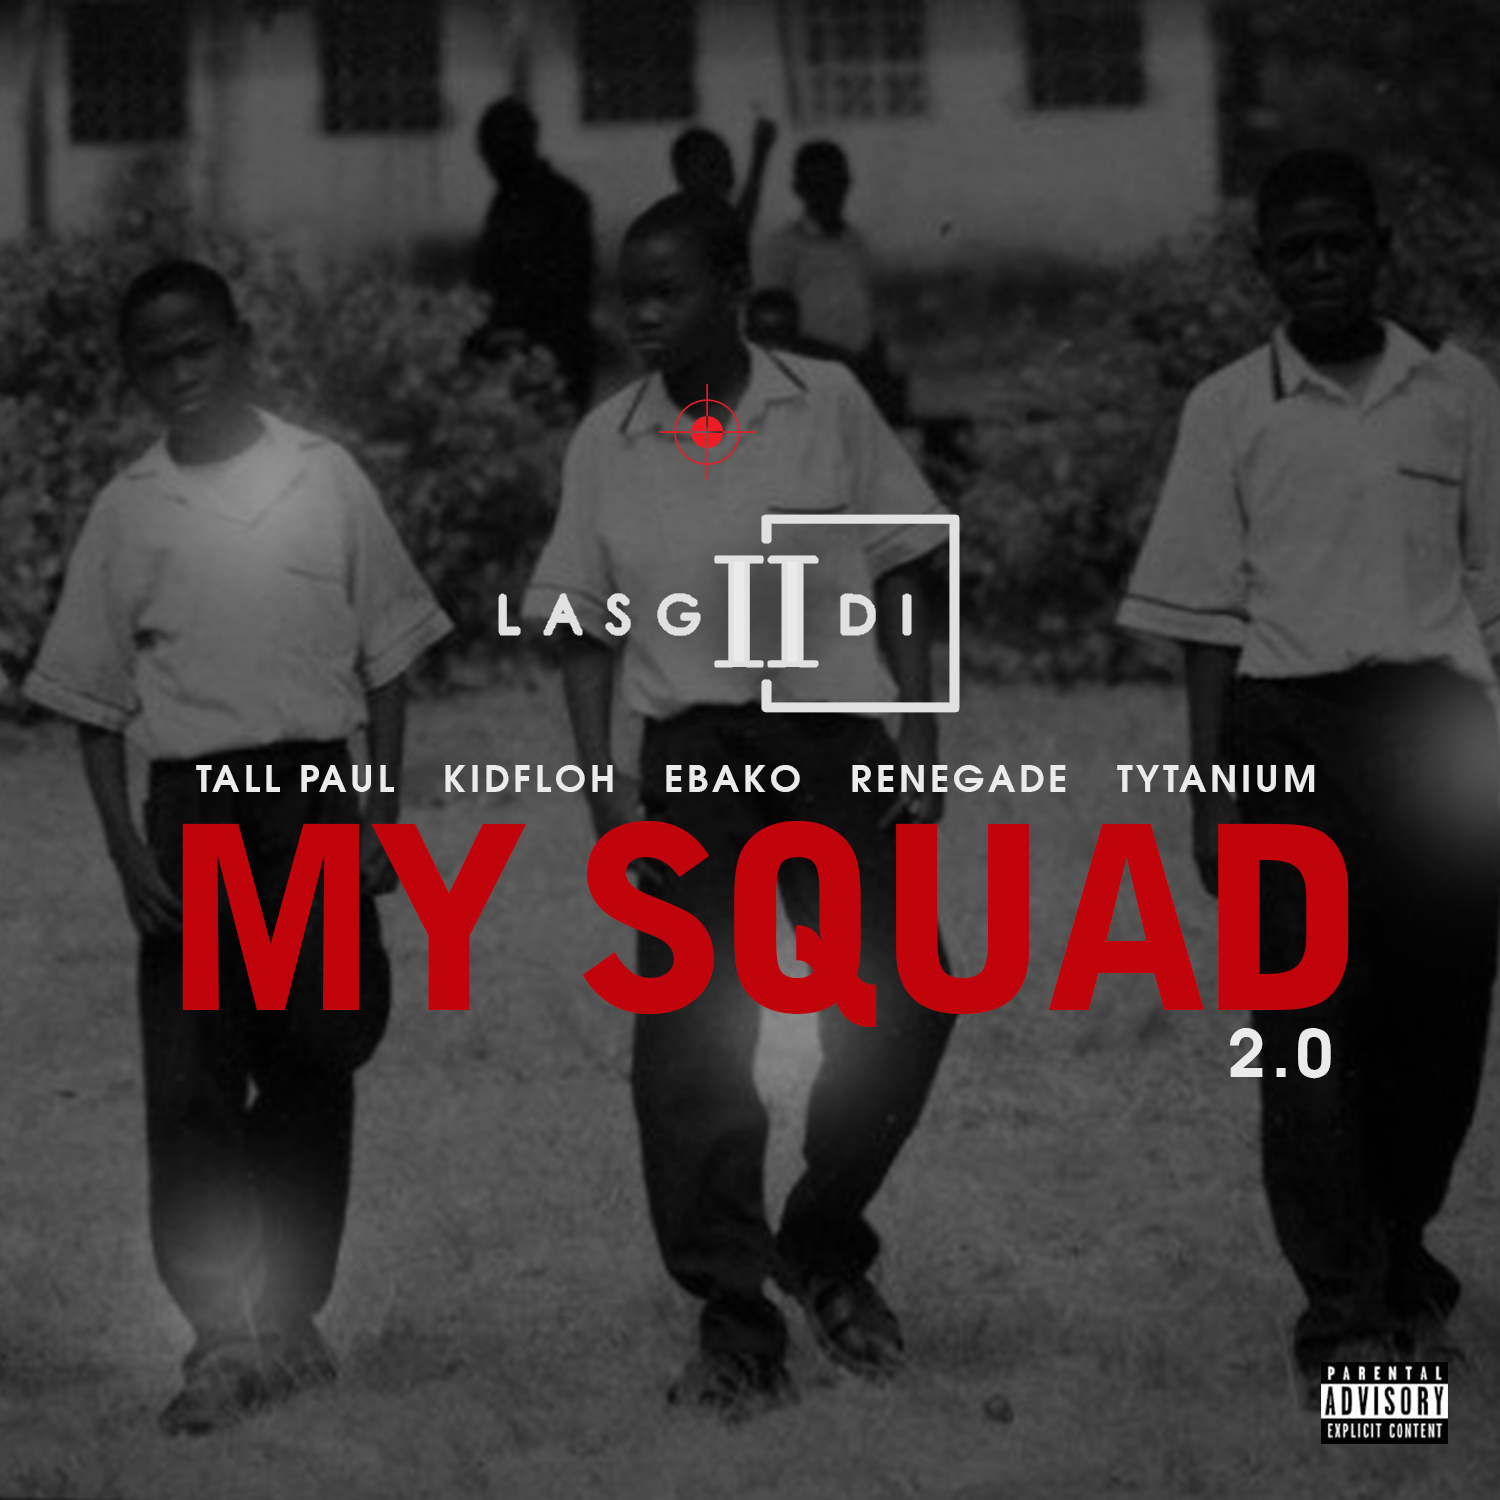 VIDEO: LasGiiDi - My Squad 2.0 Ft Tall Paul, Kidfloh, Ebako, Mr. Renegade & Tytanium